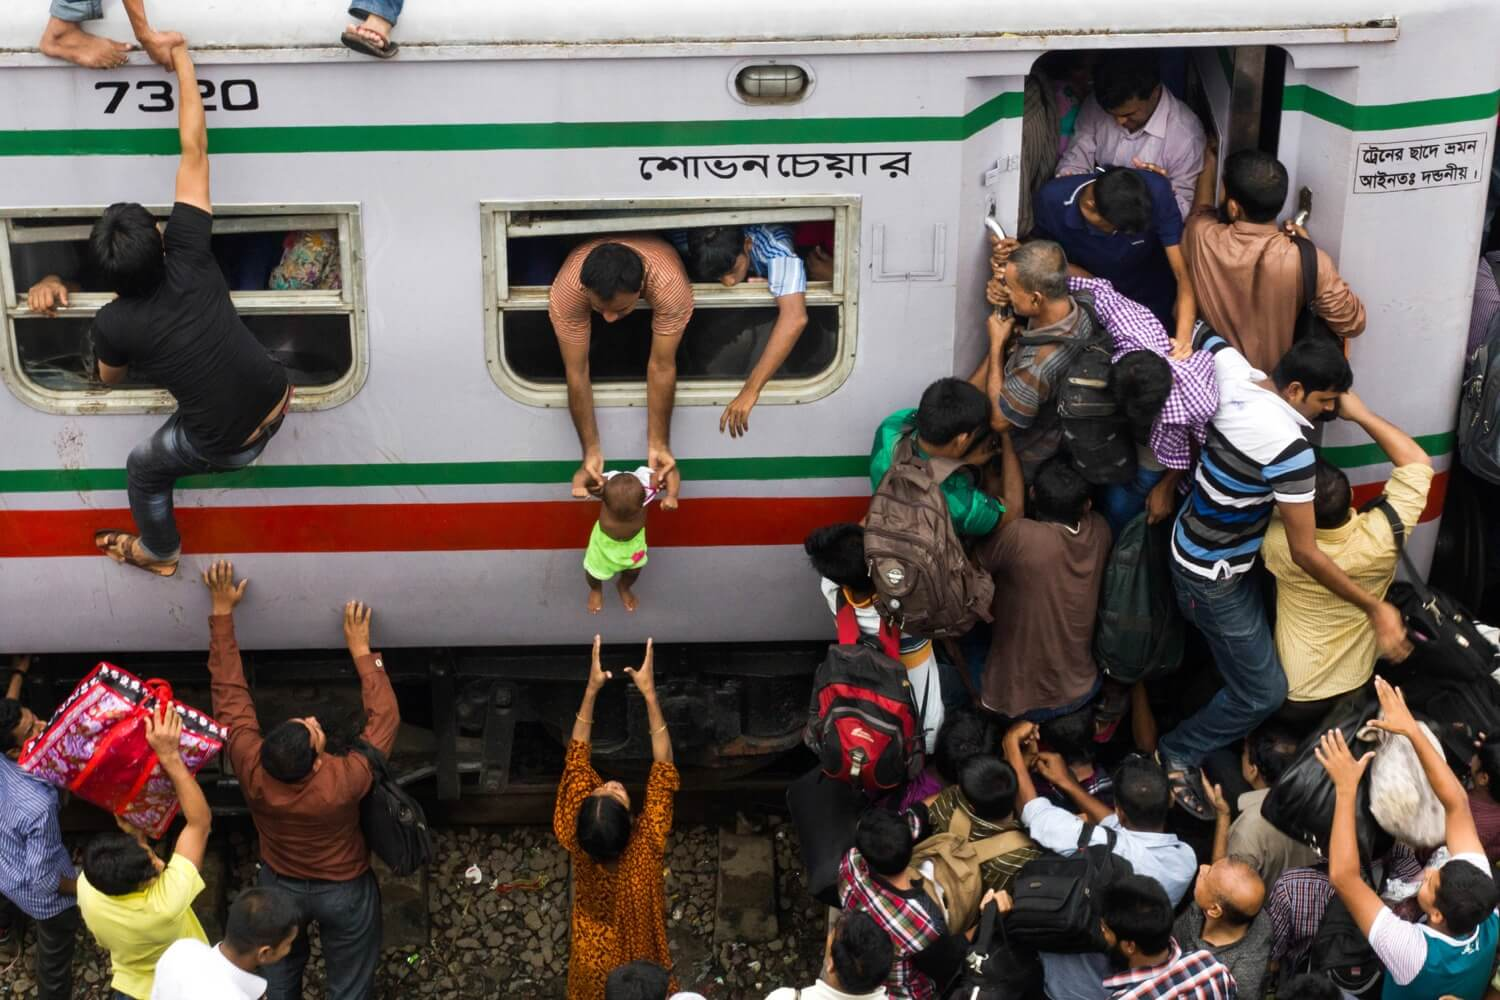 Md. Enamul Kabir - bangladesh india train